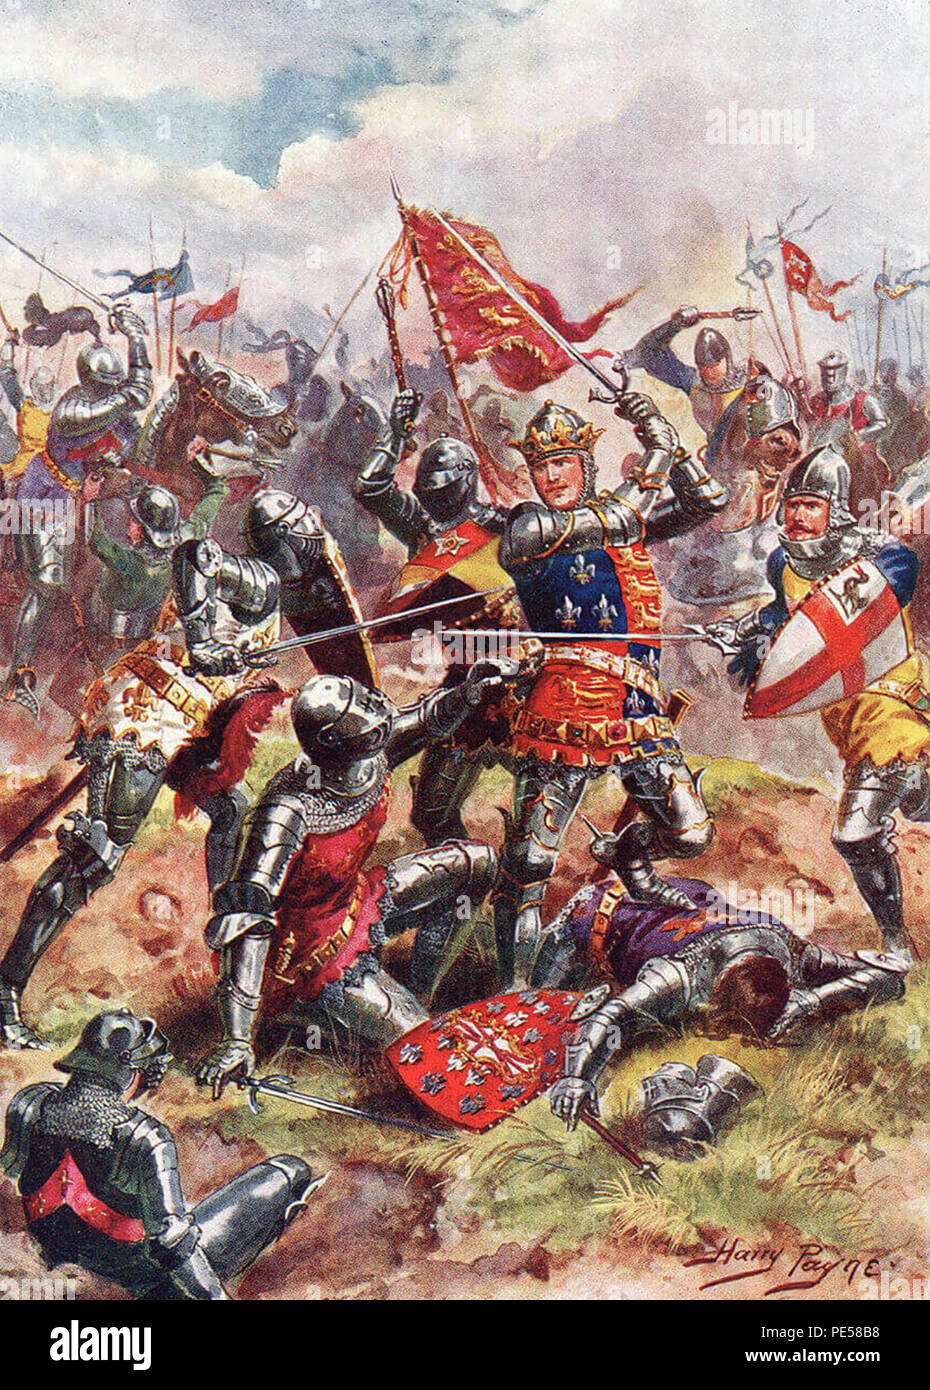 BATTLE OF AGINCOURT 25 October 1415. Illustration by English artist Harry Payne about 1912 showing Henry V leading his soldiers - Stock Image